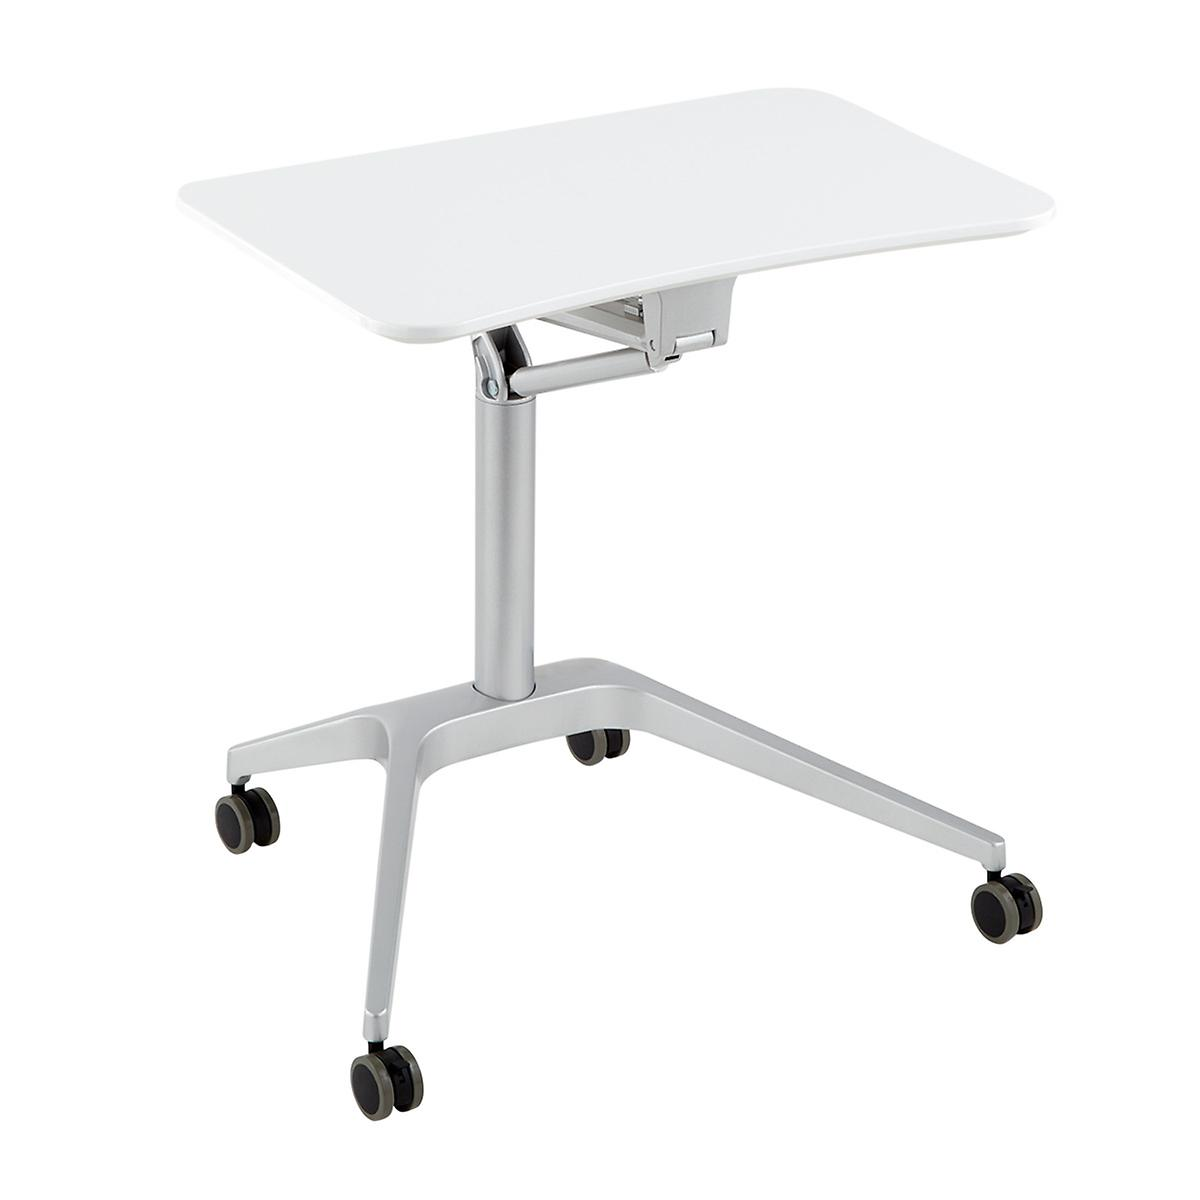 adjustable standing desk the container store - Height Adjustable Standing Desk